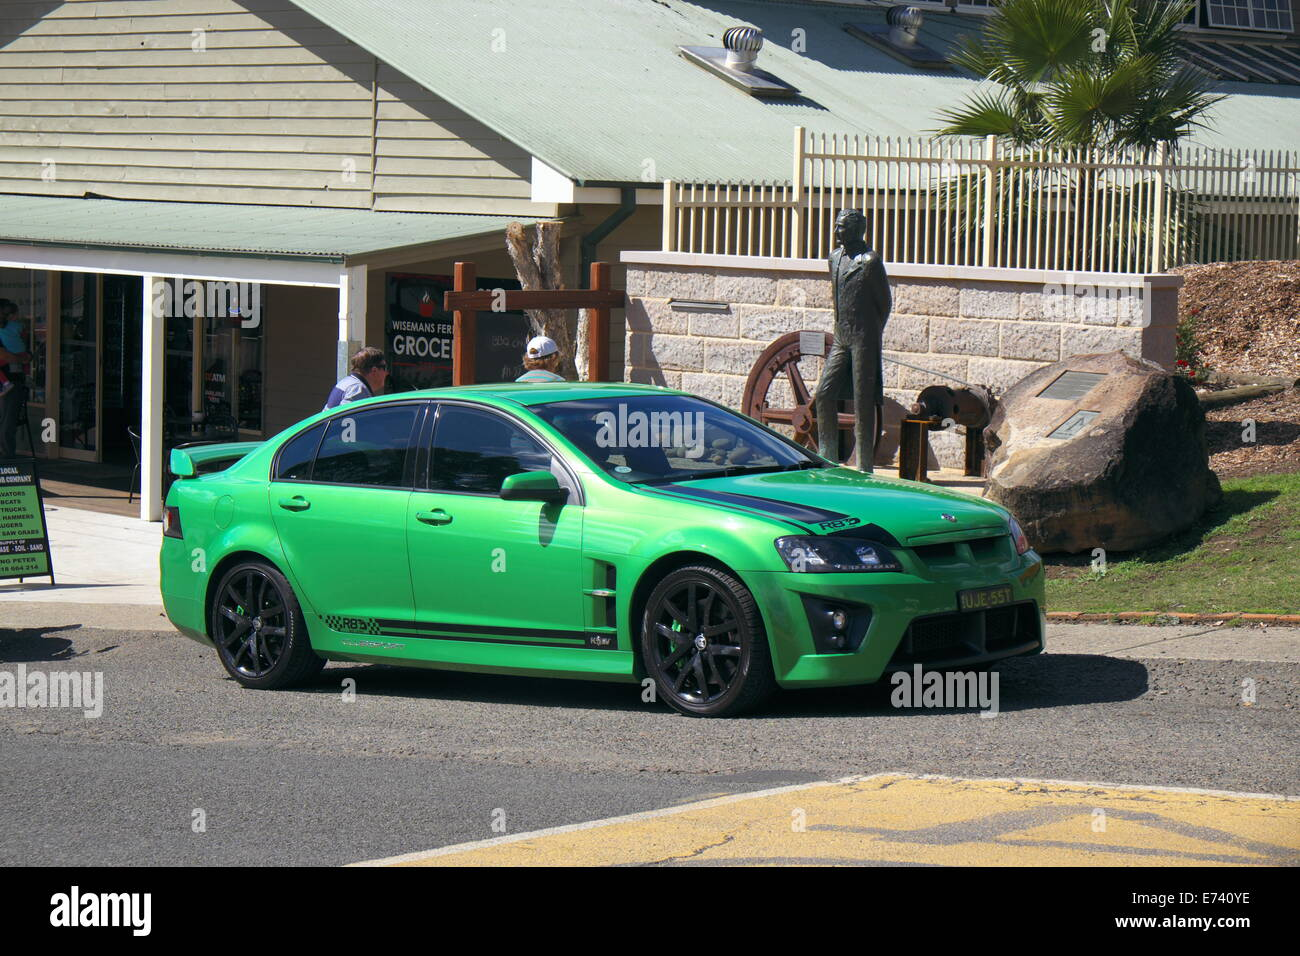 holden special vehicles ( HSV) powerful saloon car the 307 clubsport in green,wisemans ferry,new south wales,australia - Stock Image